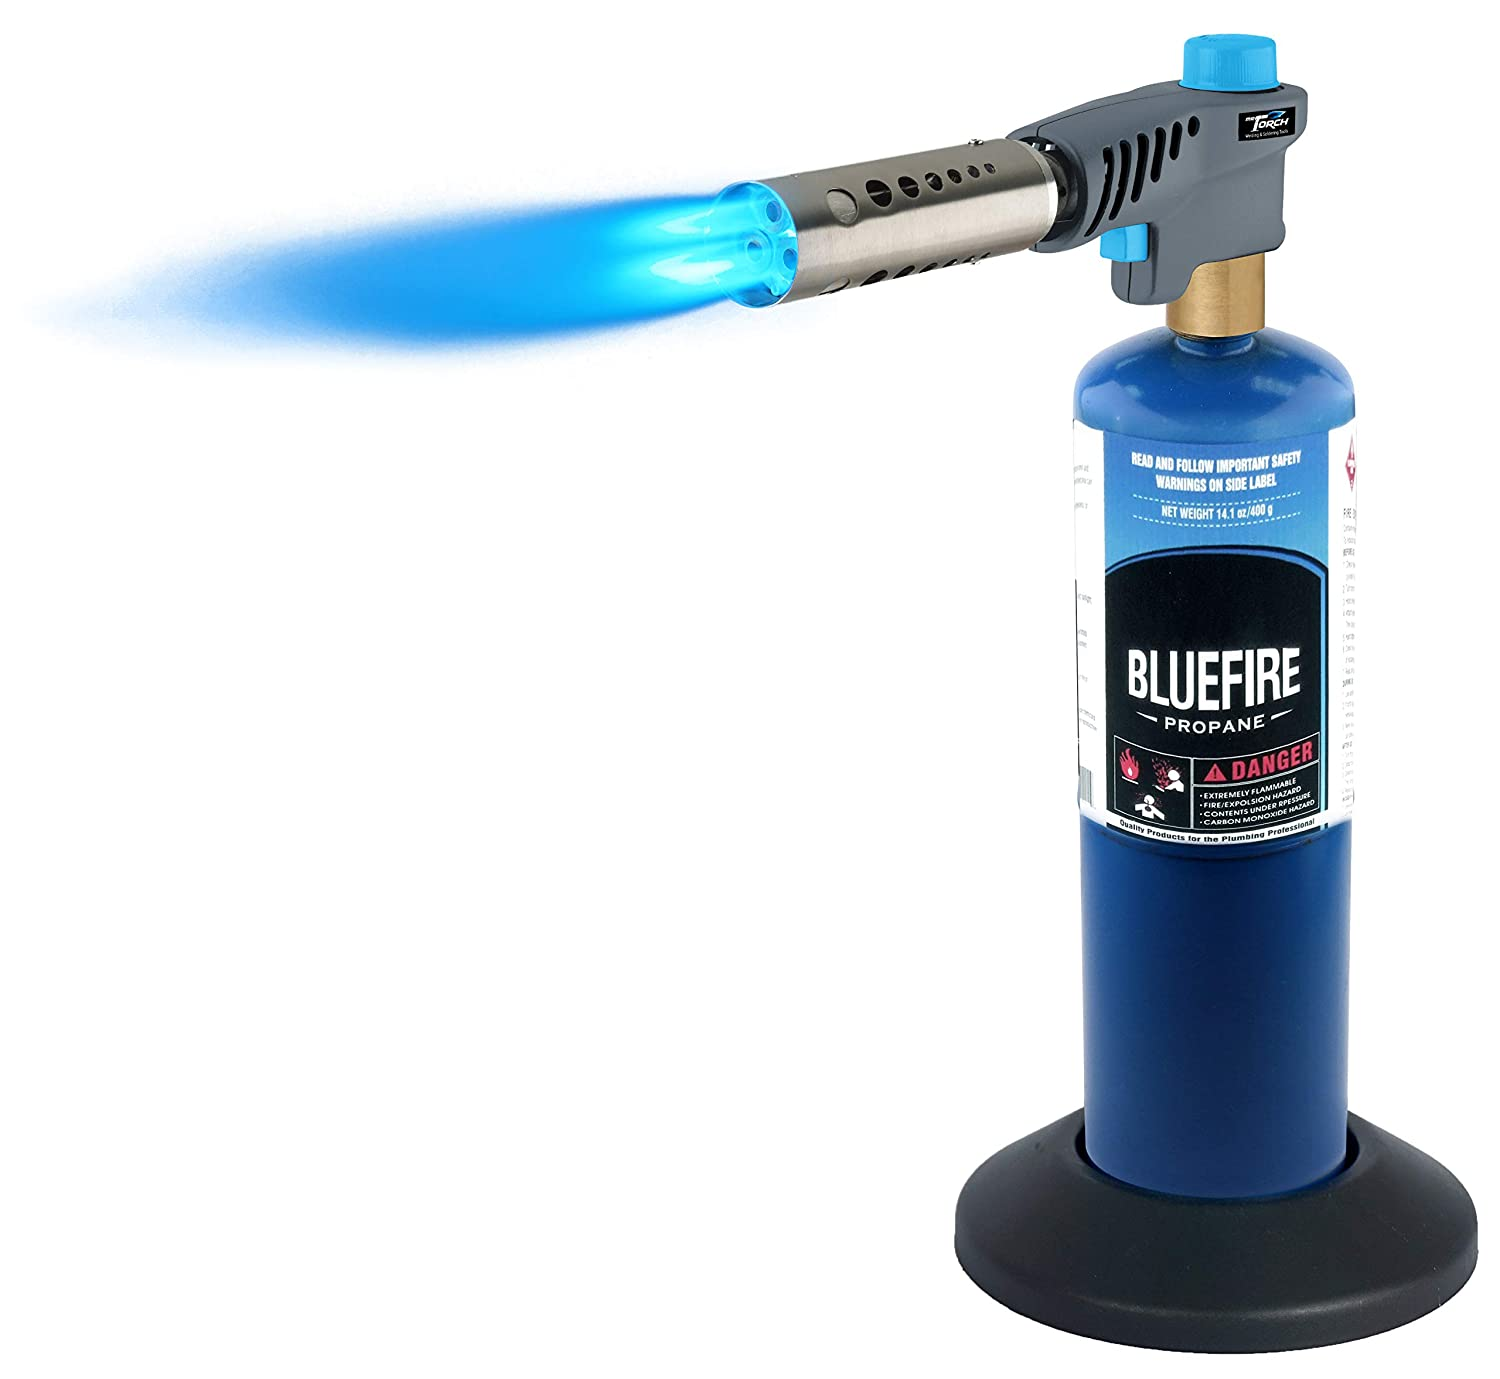 MR.TORCH Triple Flame Jet Turbo Torch ONLY, Trigger Start Gas Cooking/Searing/Welding Torch Head, Fuel by MAPP/MAP Pro/Propane, Free Cylinder Stabilize Base!